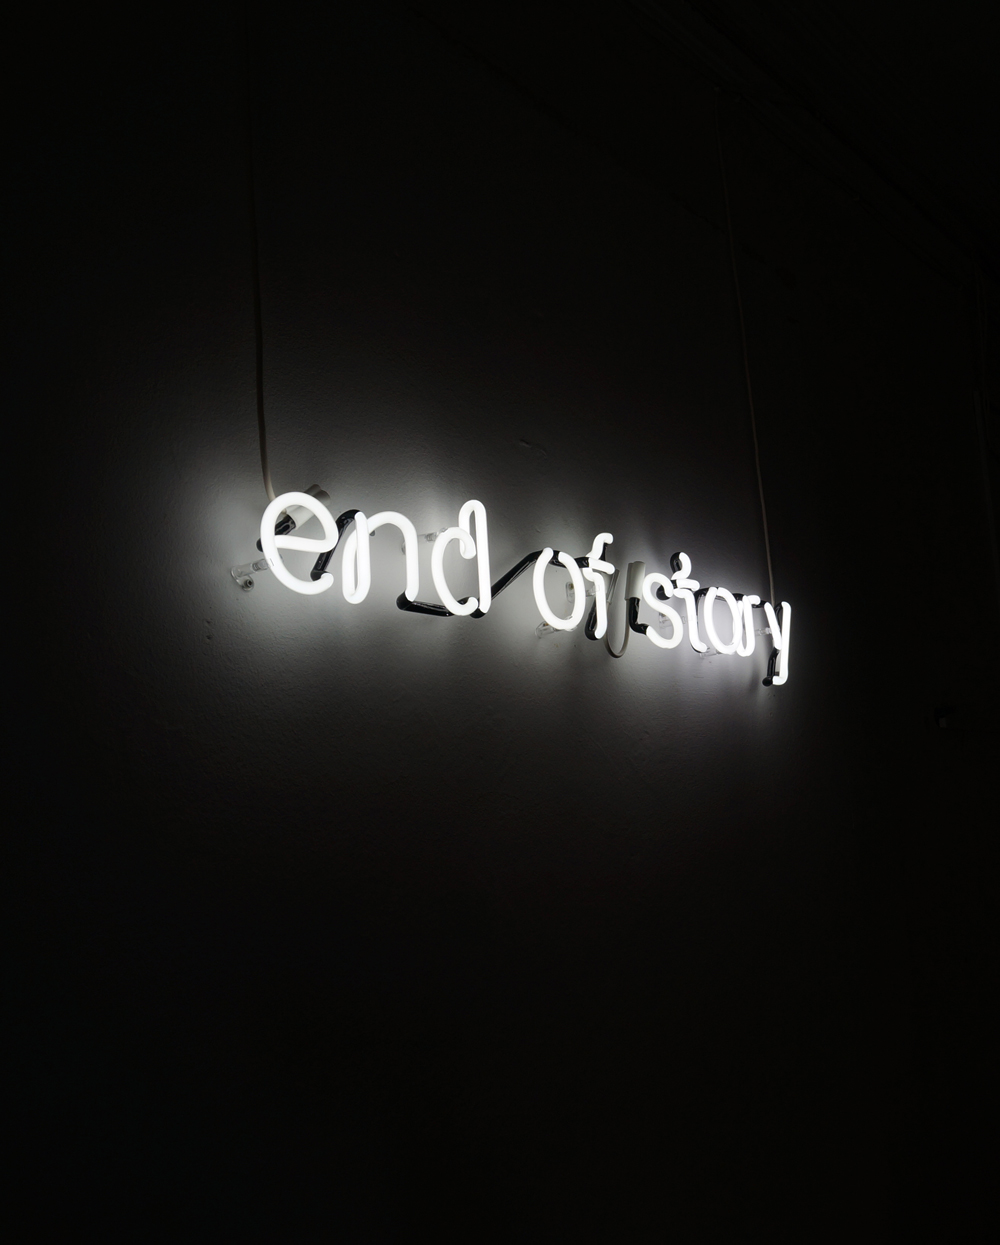 End of Story